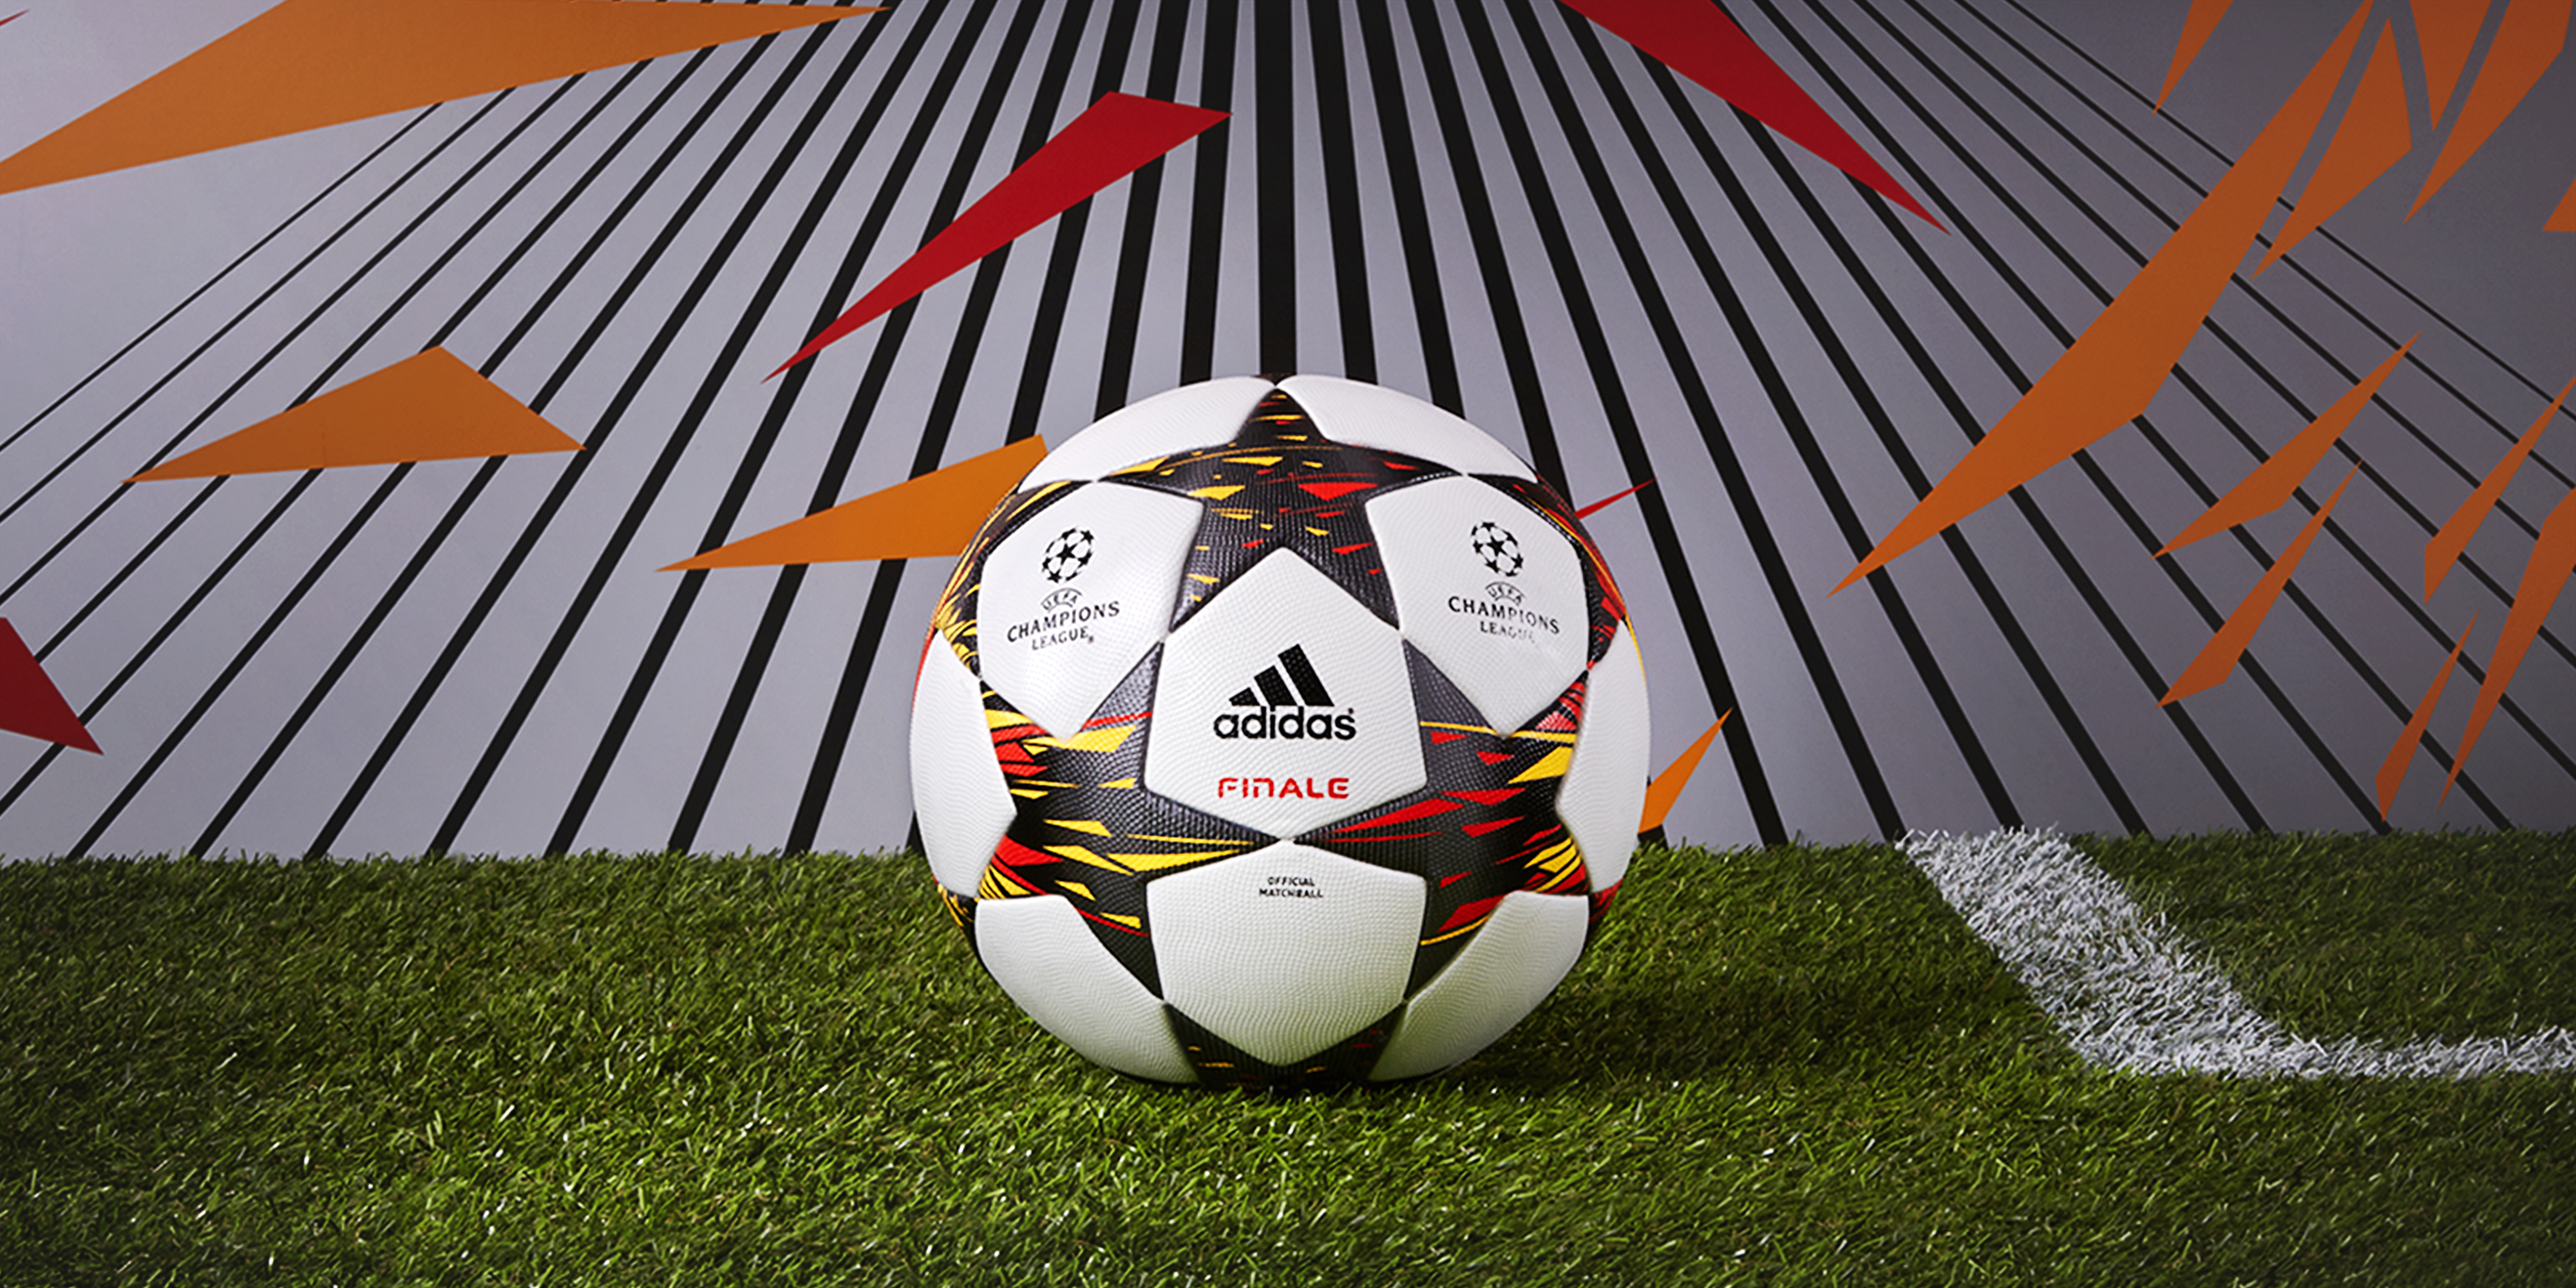 adidas reveals new UEFA Champions League Official Match Ball